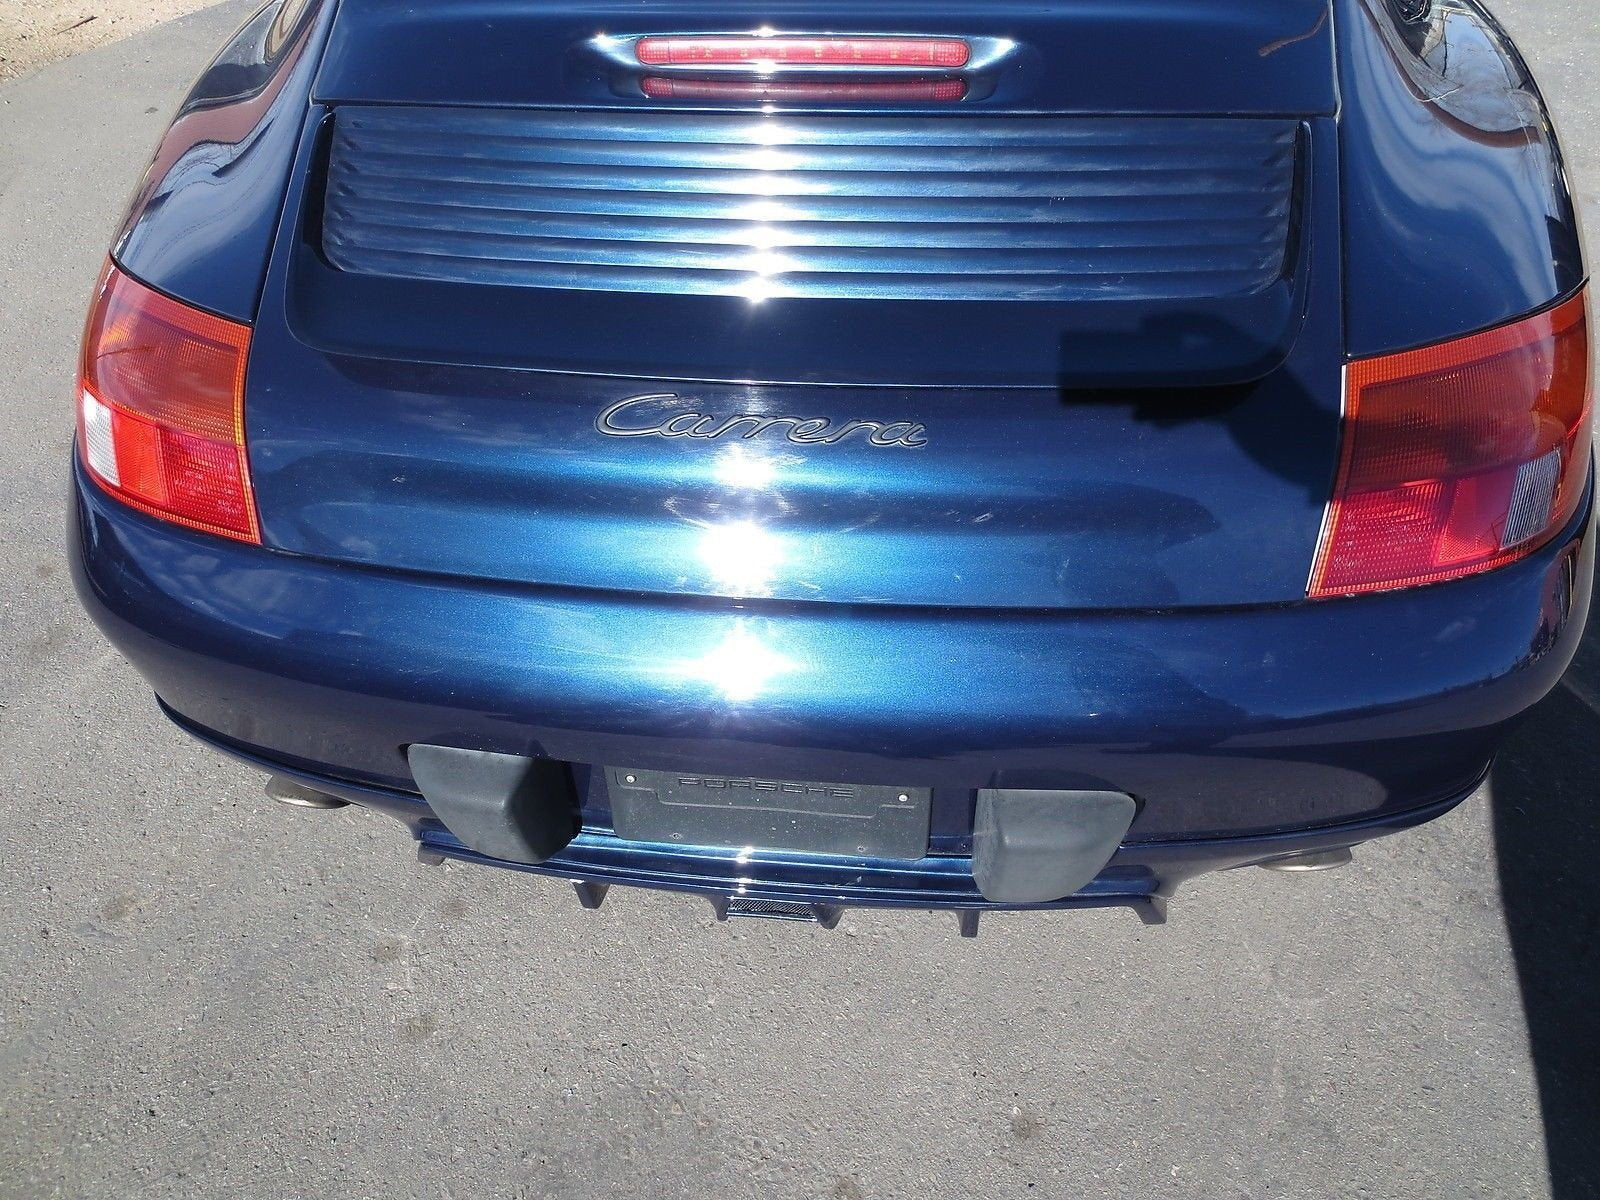 2000 Porsche 911 Carrera Coupe 996 Parting Out car parts 104,121